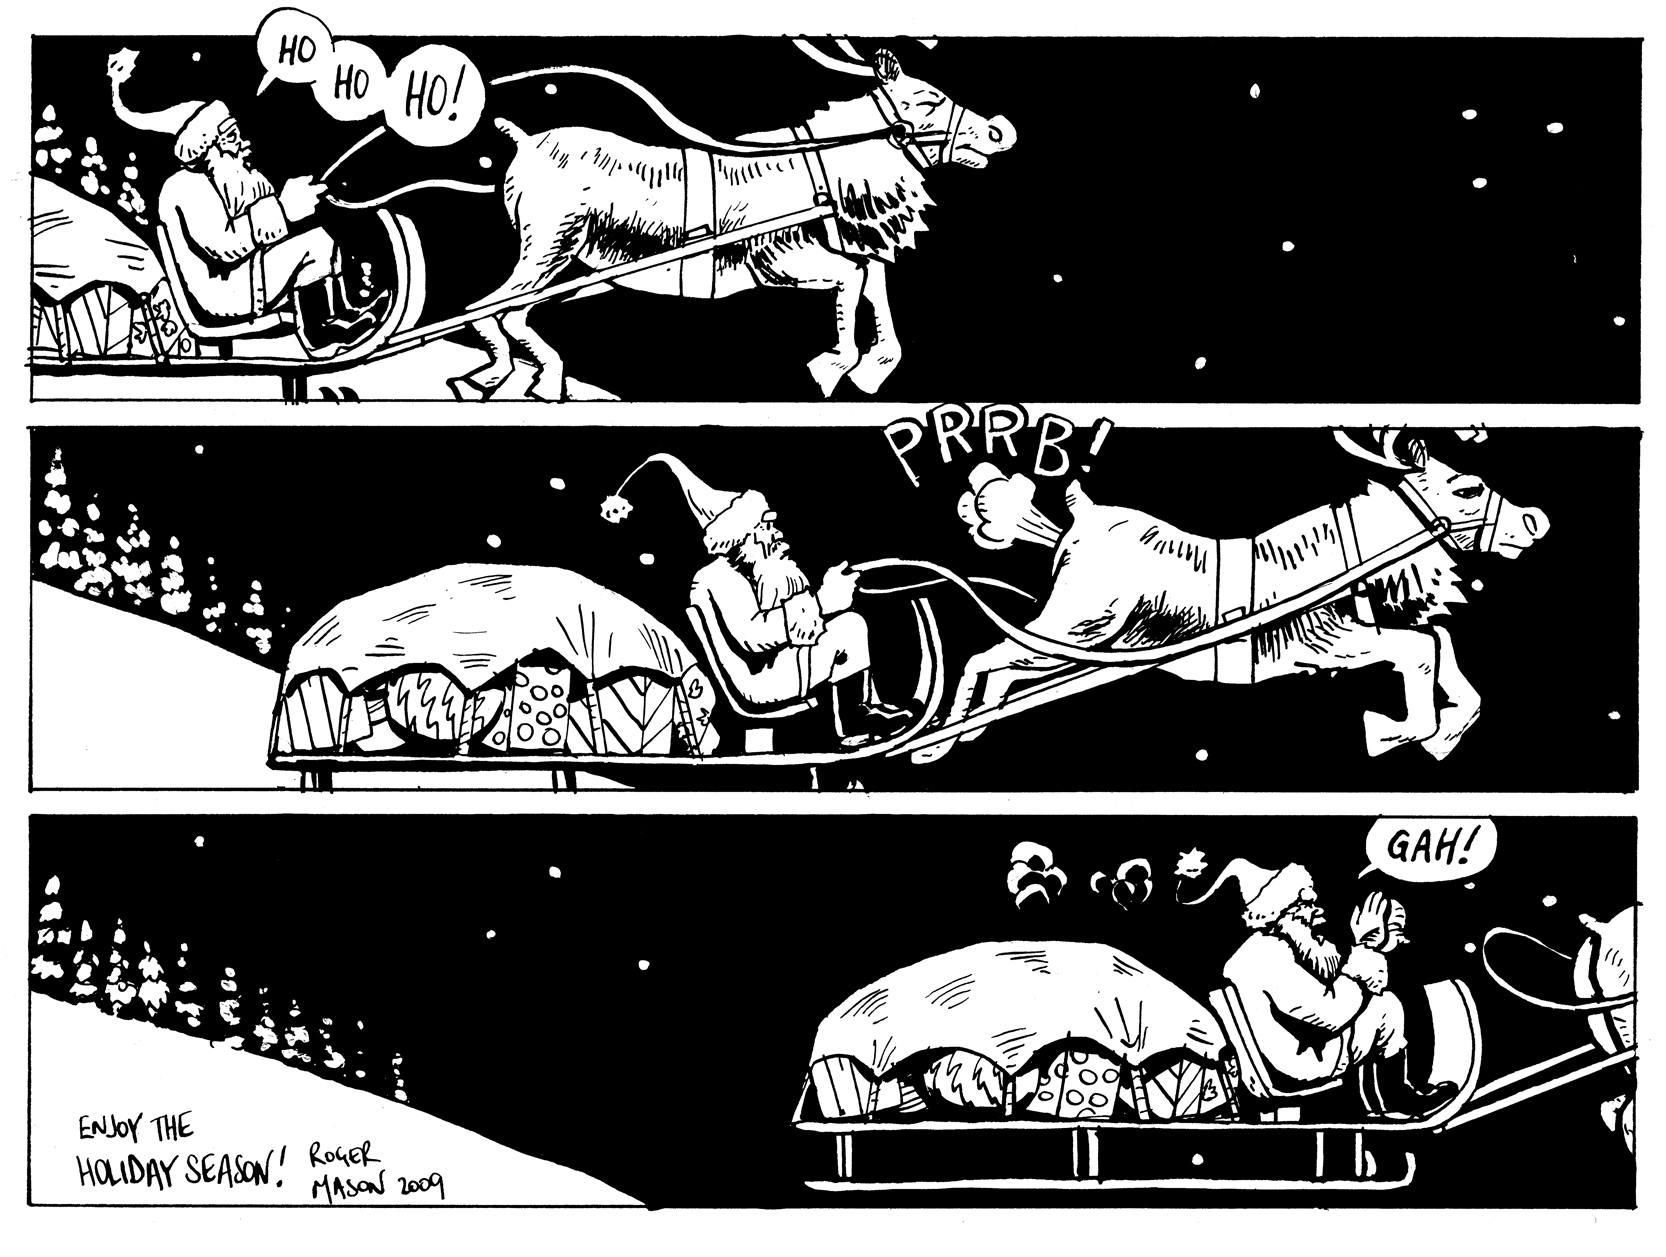 Christmas comic strip on a card featuring Santa and a farting reindeer. Comic by Roger Mason